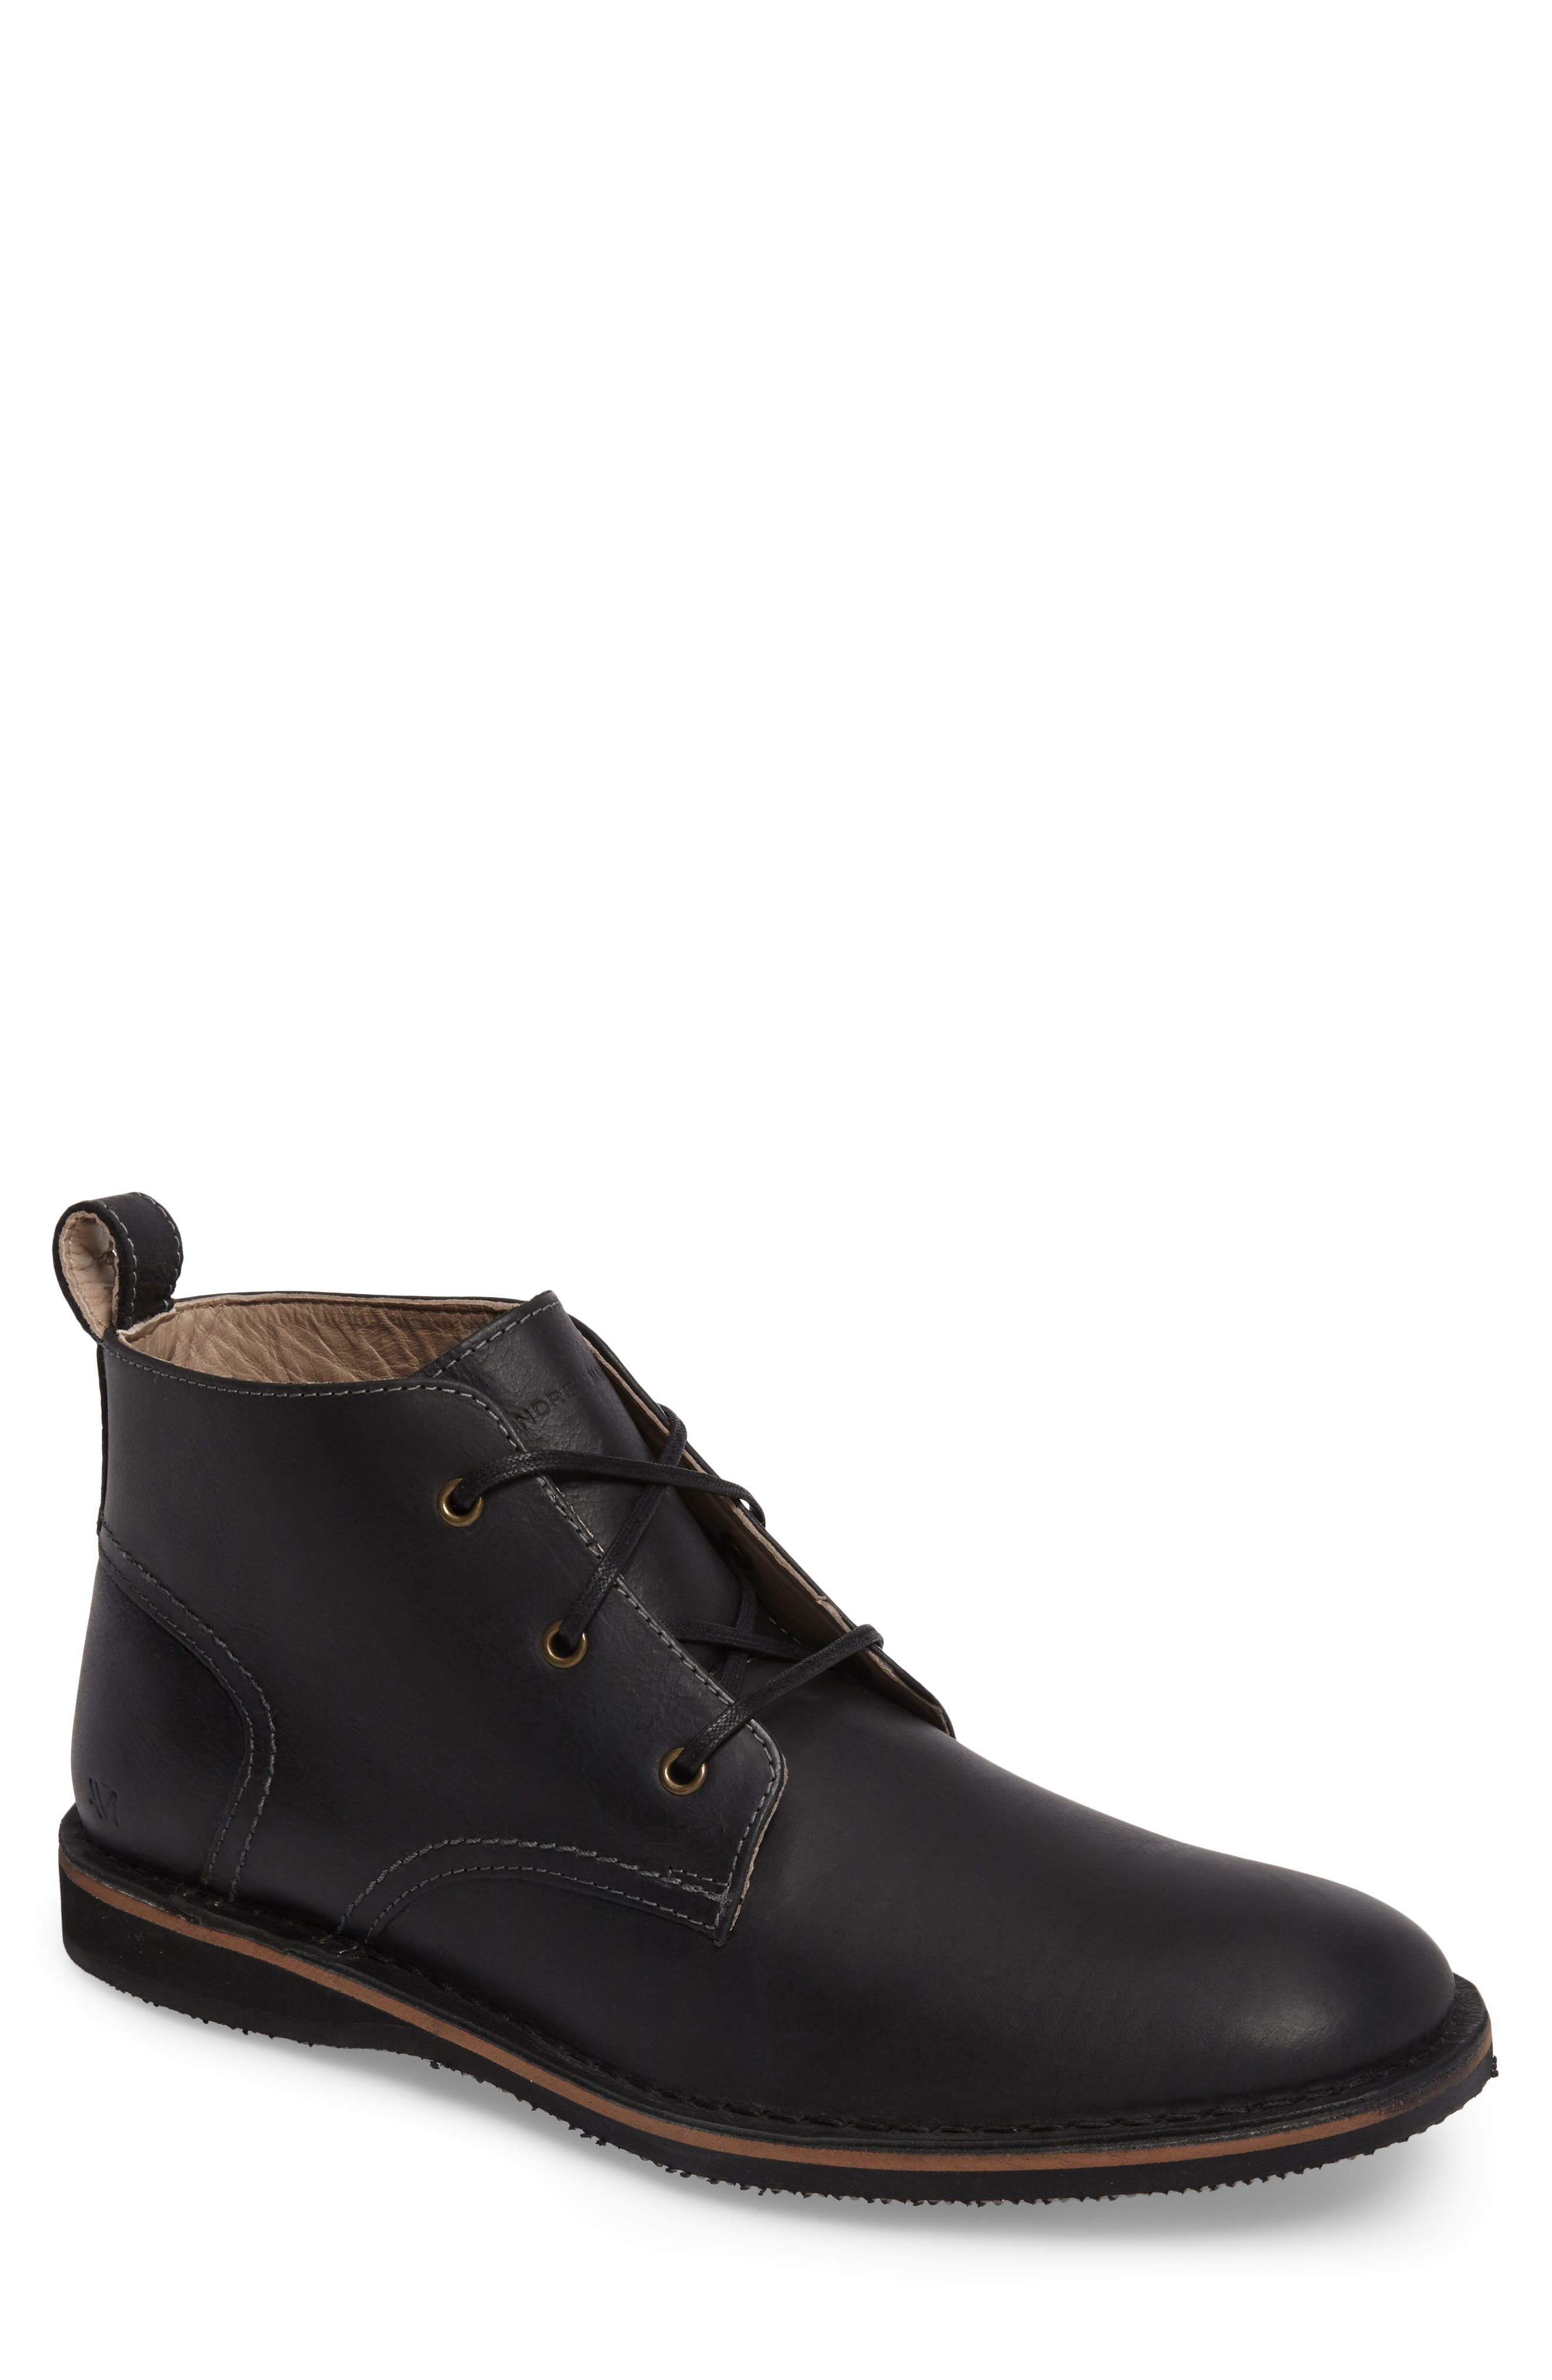 Dorchester Chukka Boot,                             Main thumbnail 1, color,                             Black Leather